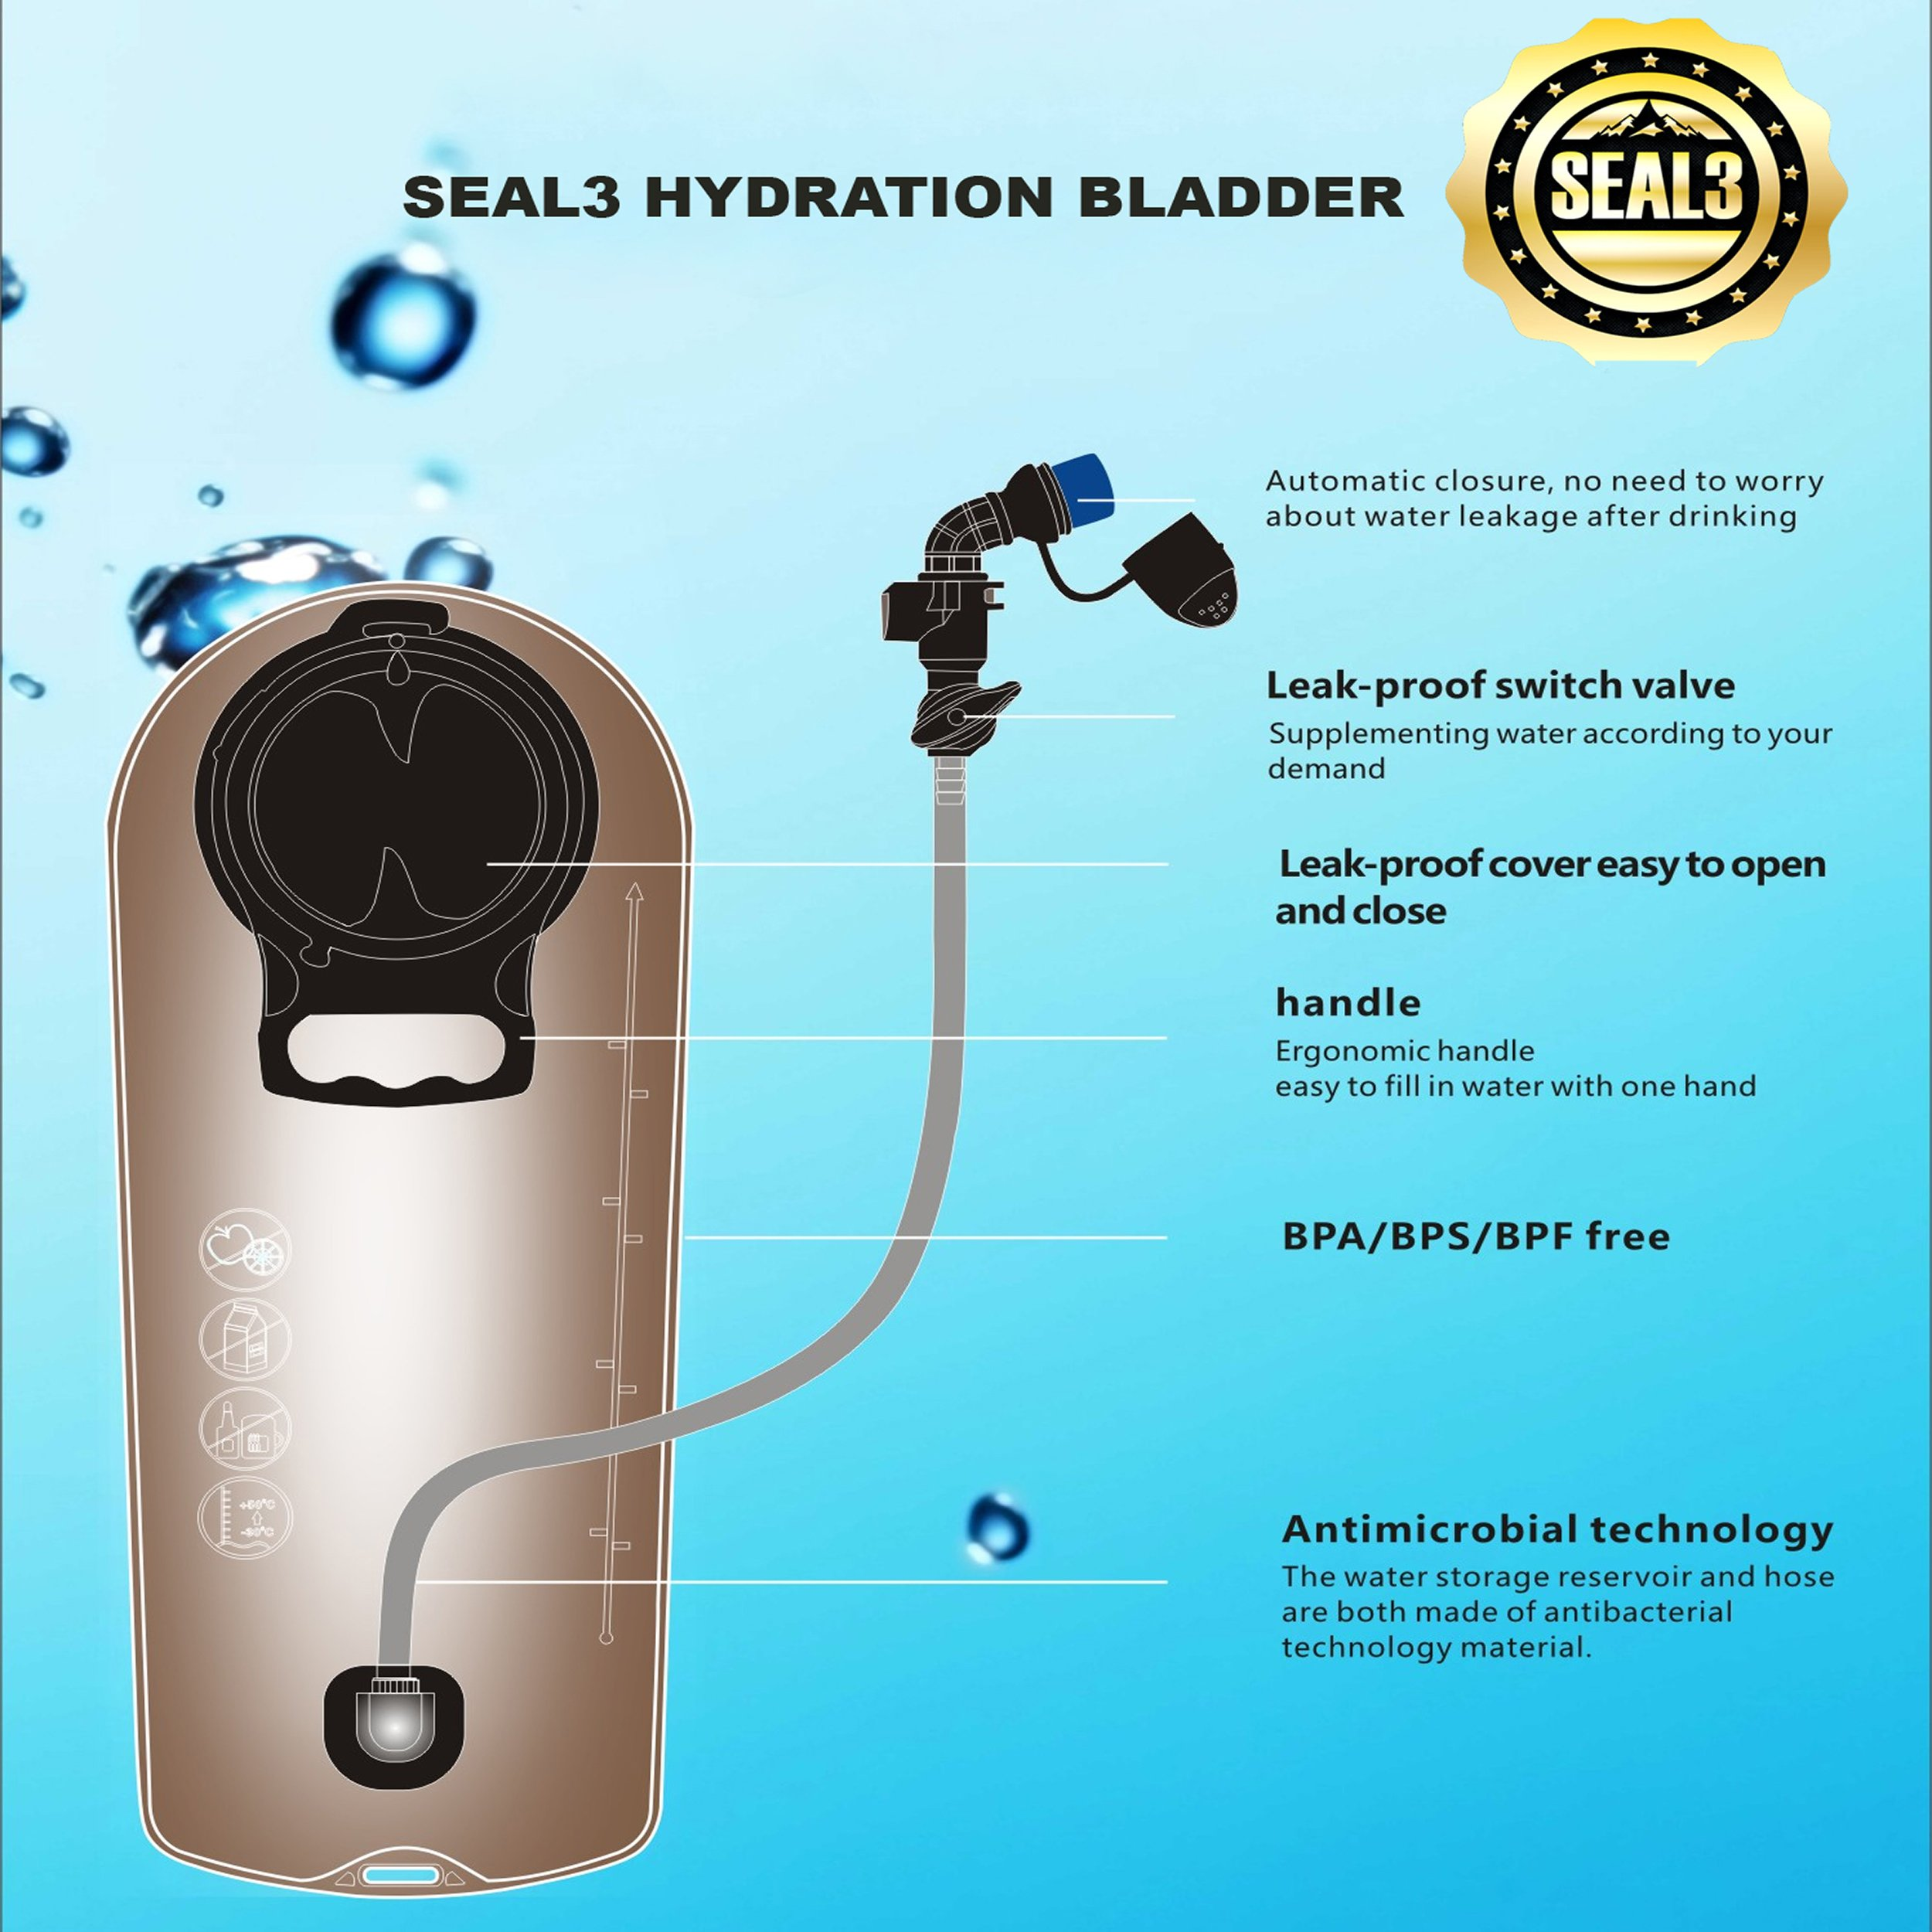 SEAL3 Hydration Bladder Bag-2.5 Liter, Pro Series, TPU, Tactical Hydration Bladder Pack Replacement, XL Opening, Insulated Hose, Shutoff Valve, Quick Connects & Elite Mouthpiece. by SEAL3 (Image #8)